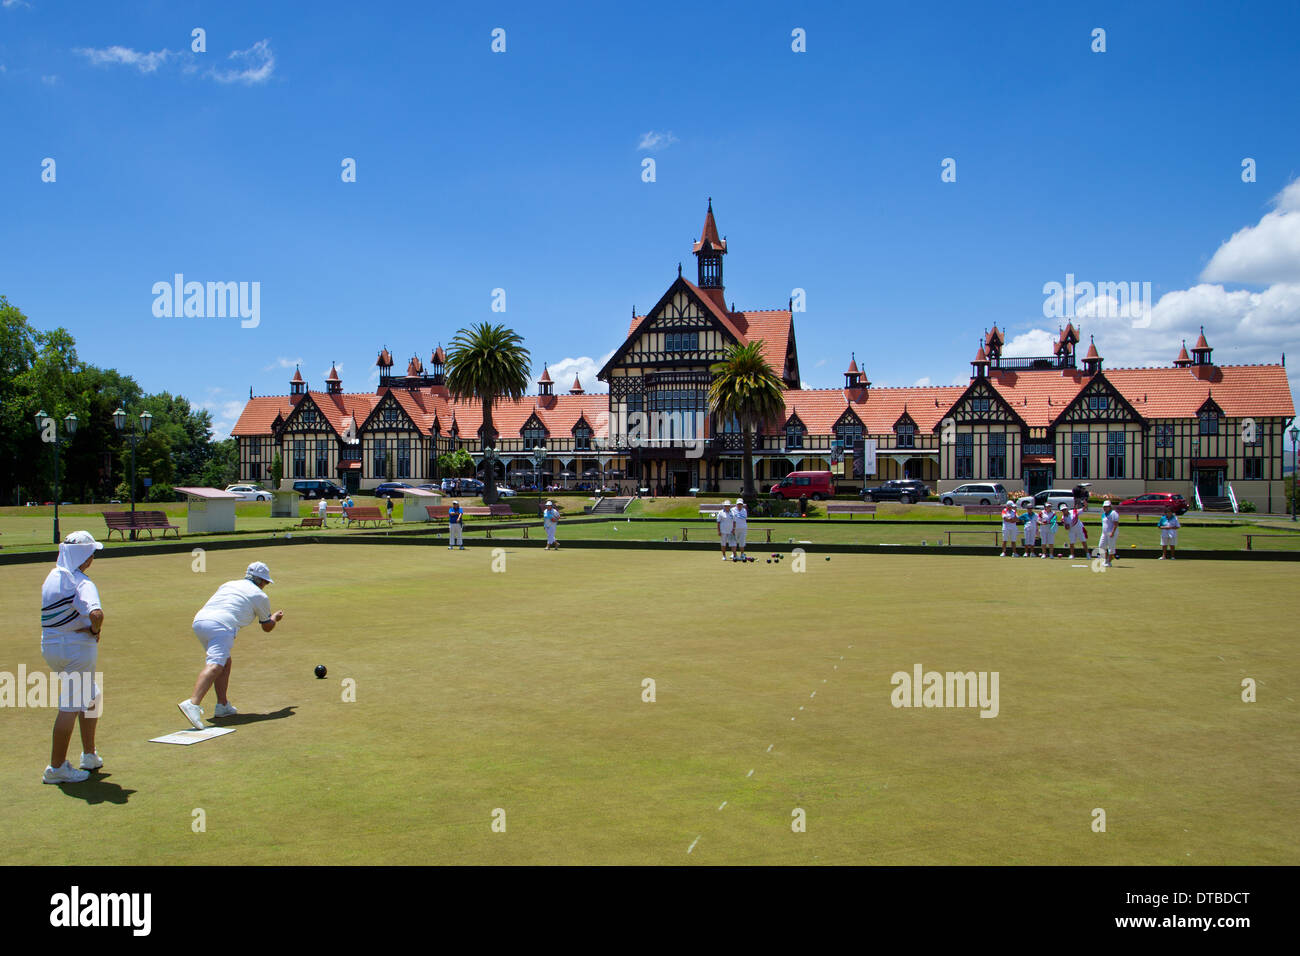 Ladies playing bowls outside the museum of art and history in the old bath house building, Rotorua, North island, New Zealand - Stock Image